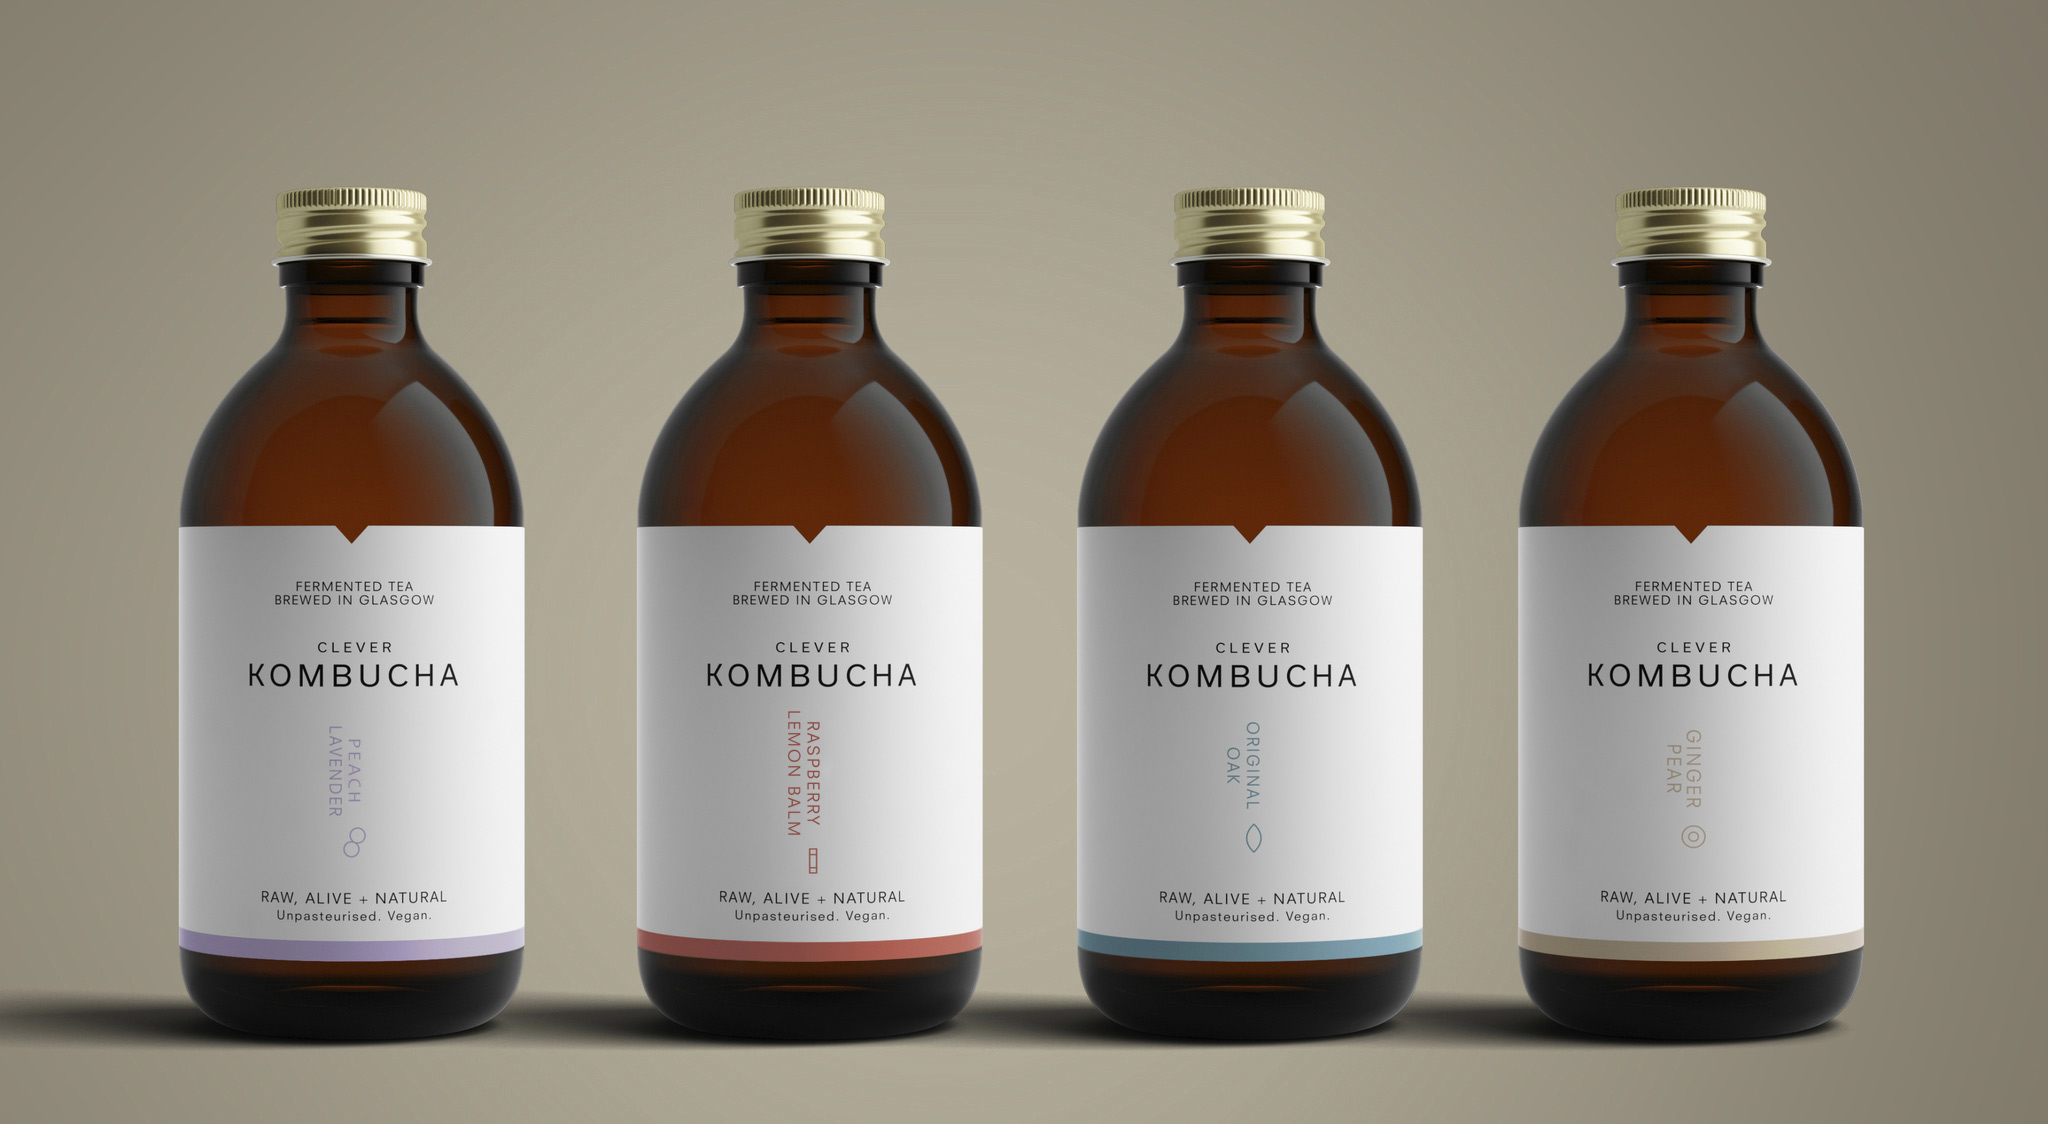 www.cleverkombucha.co.uk